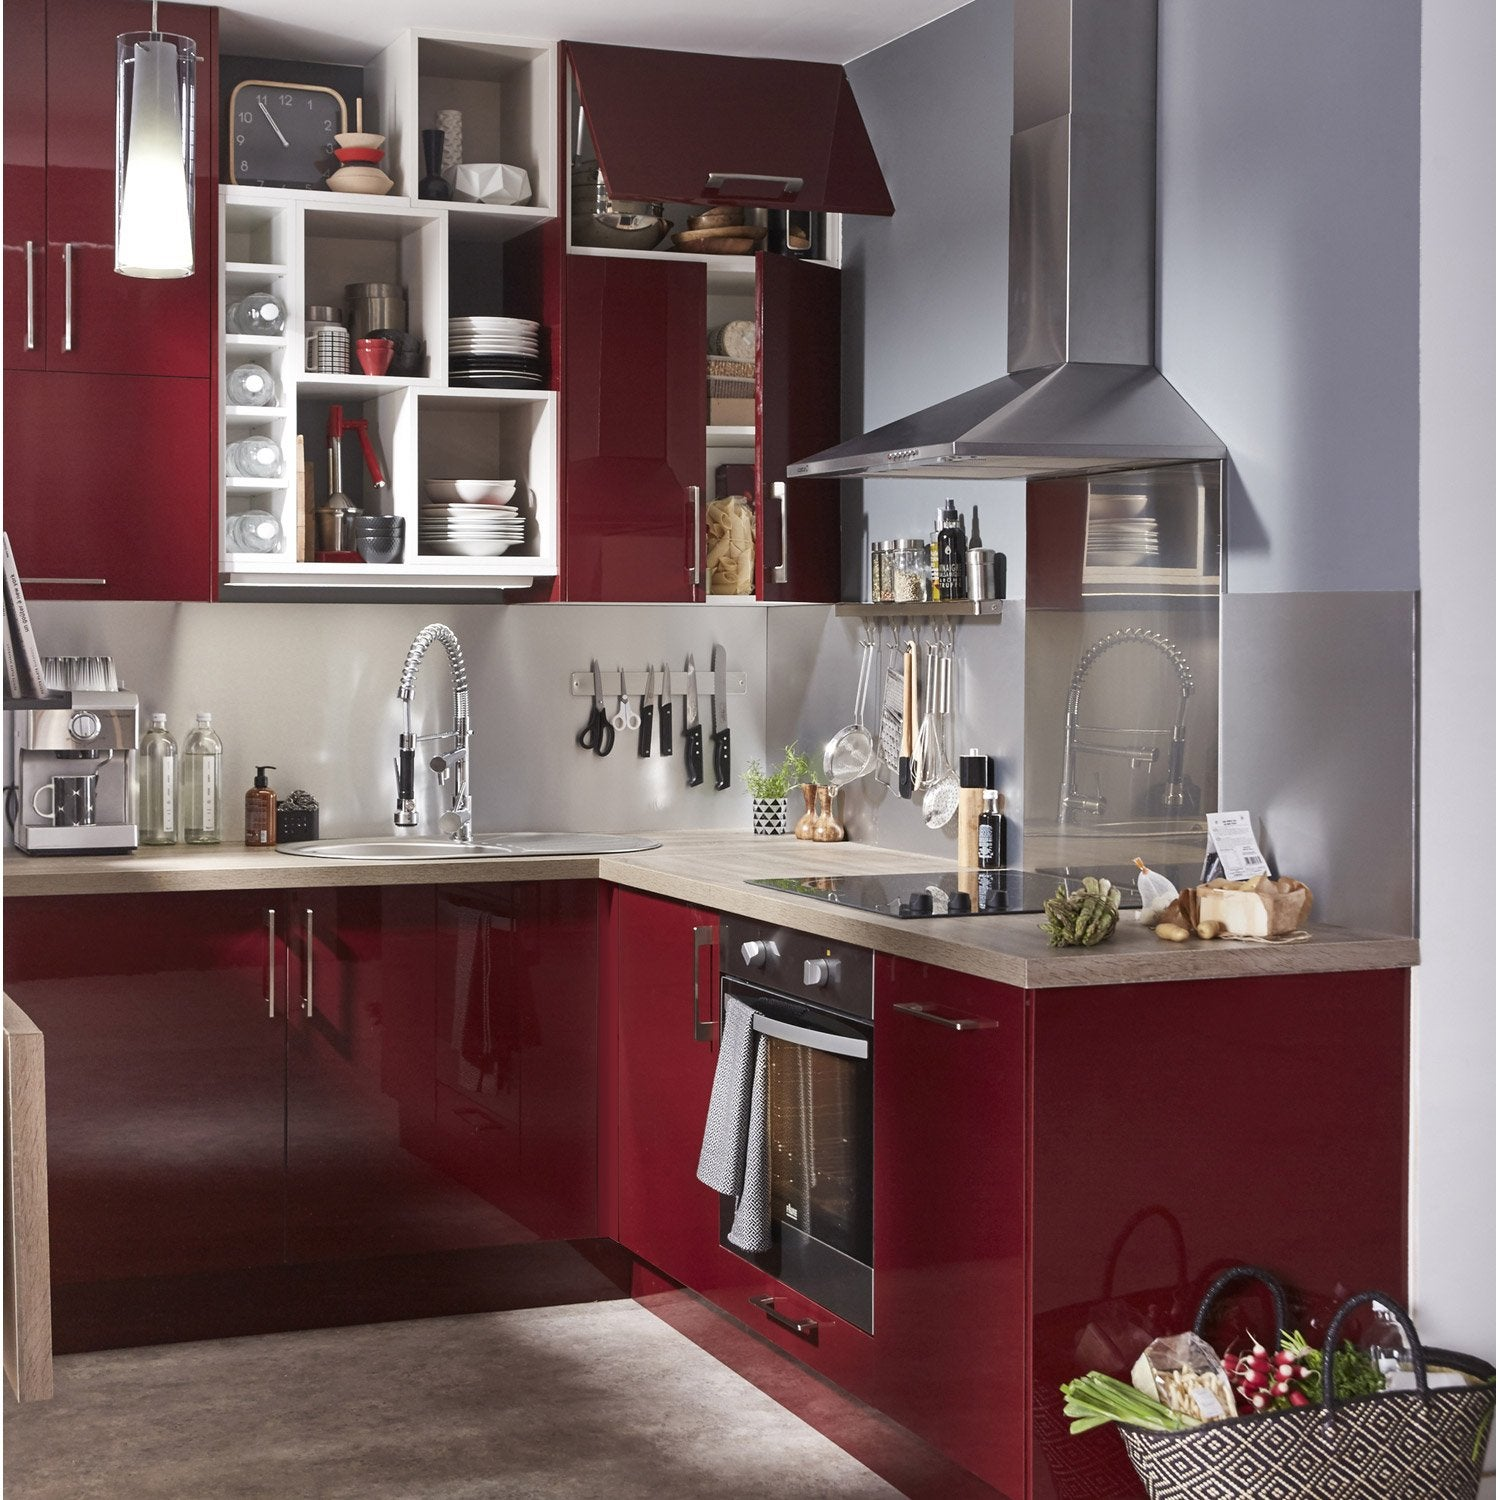 Meuble de cuisine rouge delinia griotte leroy merlin for Meuble cuisine amenagee